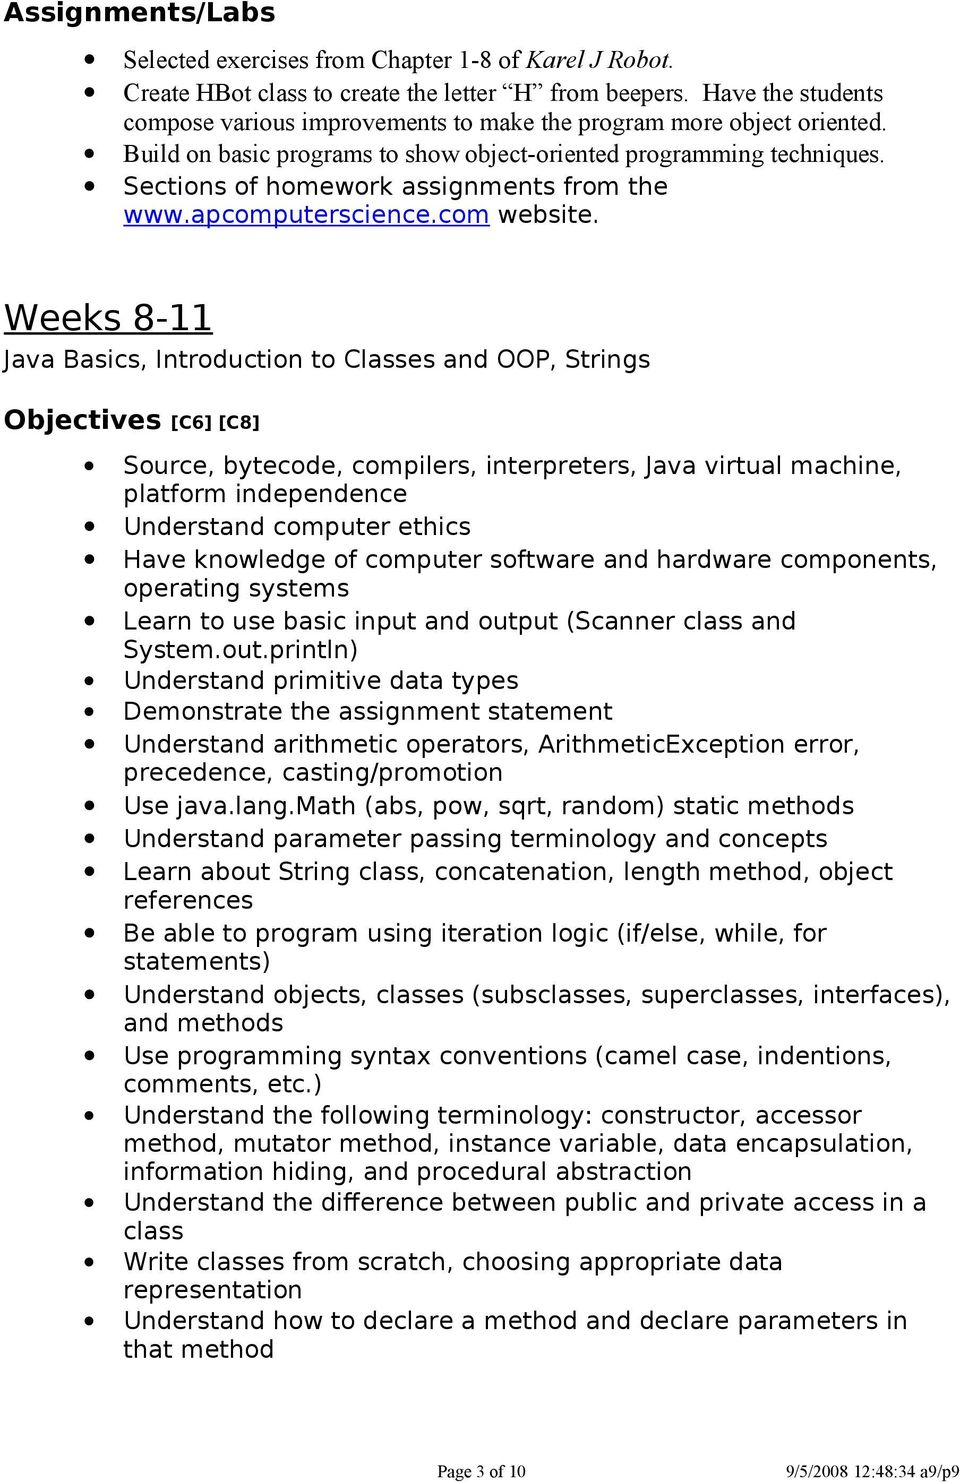 Weeks 8-11 Java Basics, Introduction to Classes and OOP, Strings Objectives [C6] [C8] Source, bytecode, compilers, interpreters, Java virtual machine, platform independence Understand computer ethics